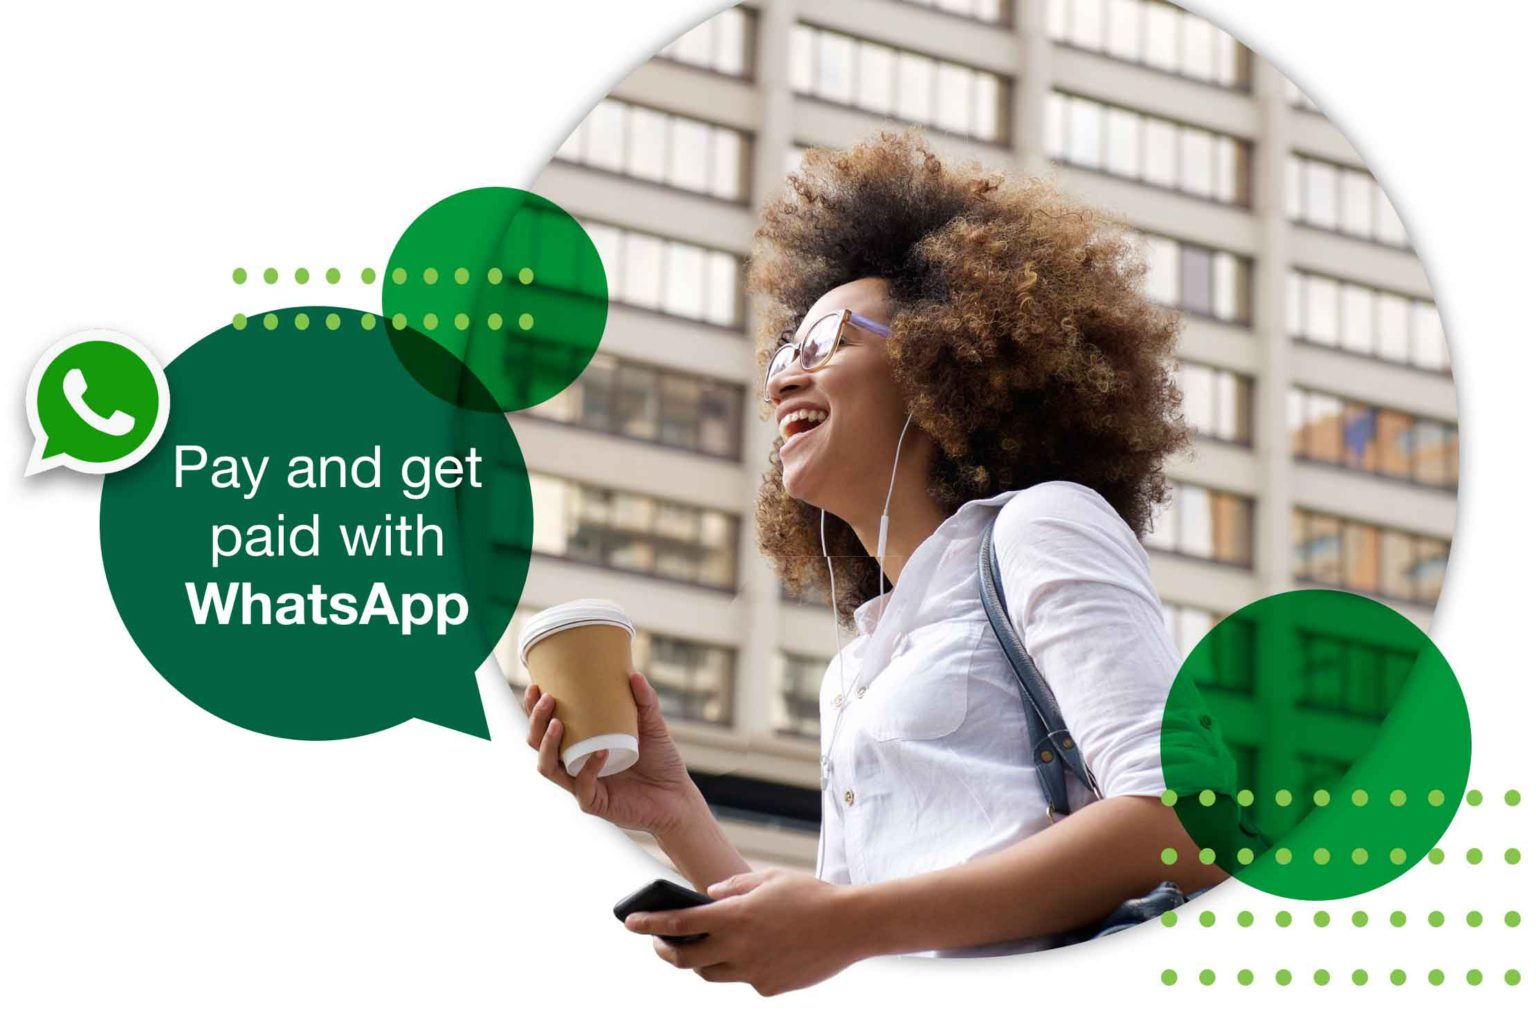 SA fintech, Nedbank launches payment feature that allows users send and receive payments on WhatsApp